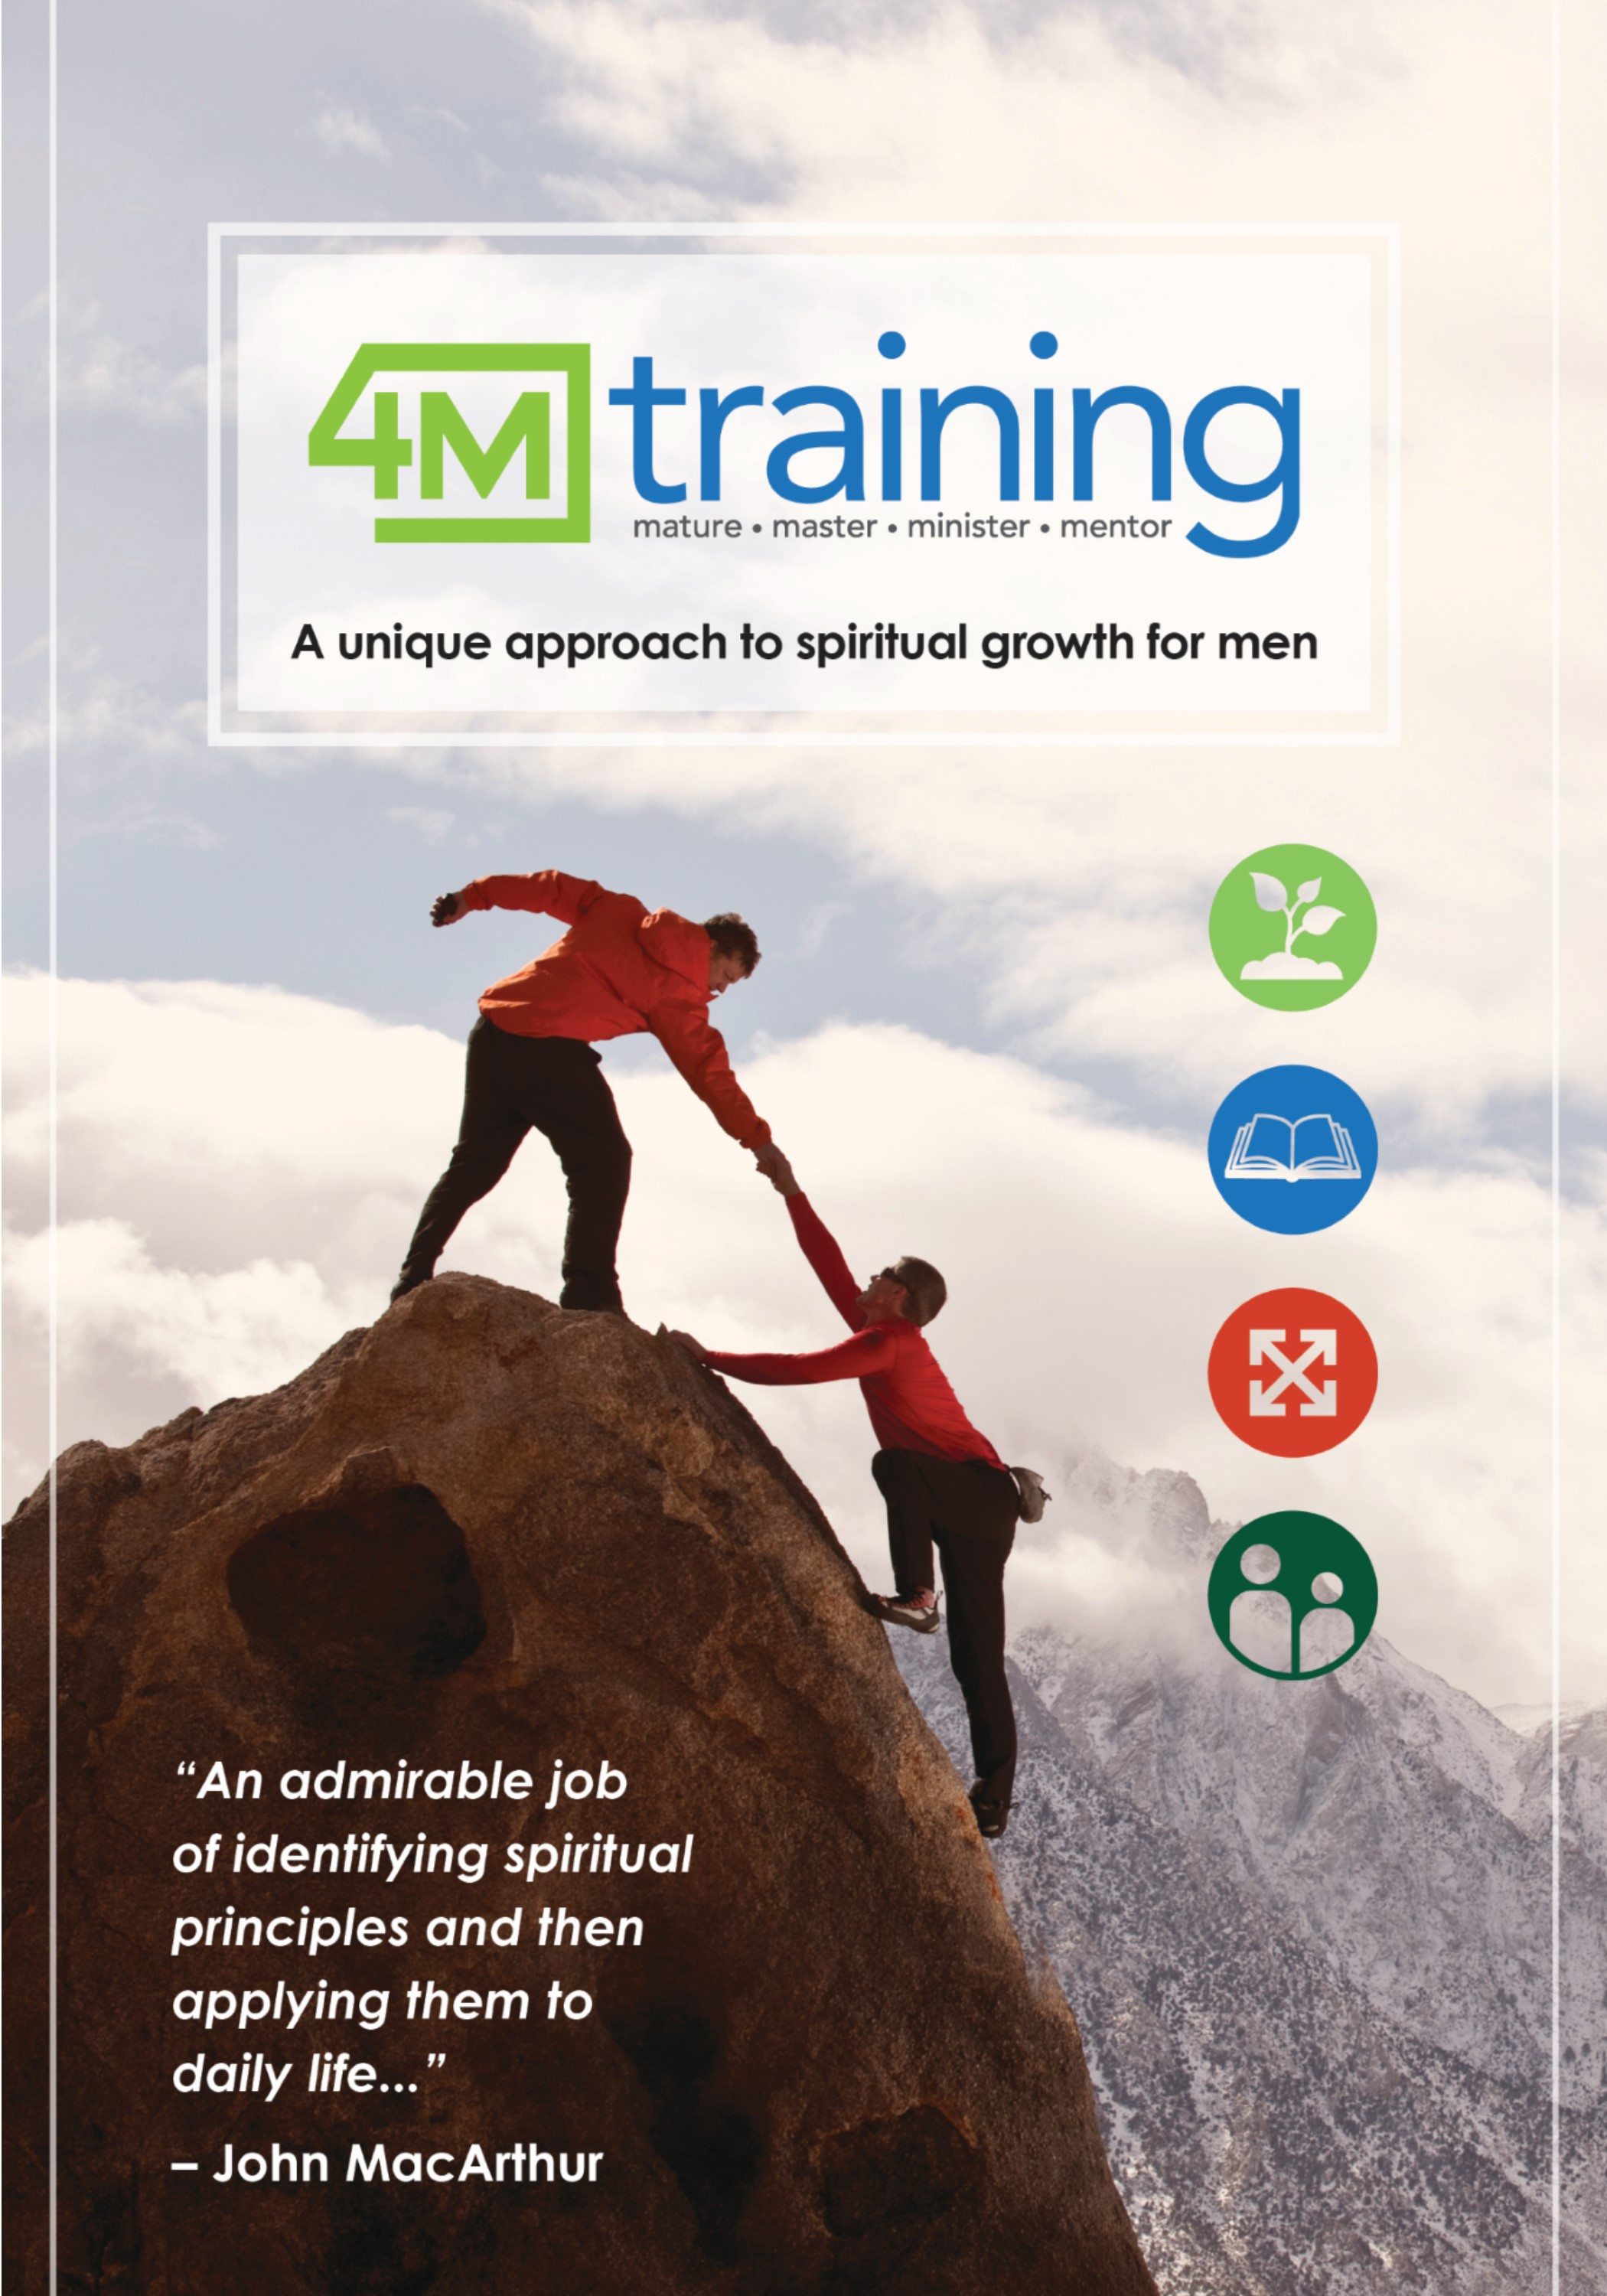 4M Training: a unique approach to spiritual growth for men